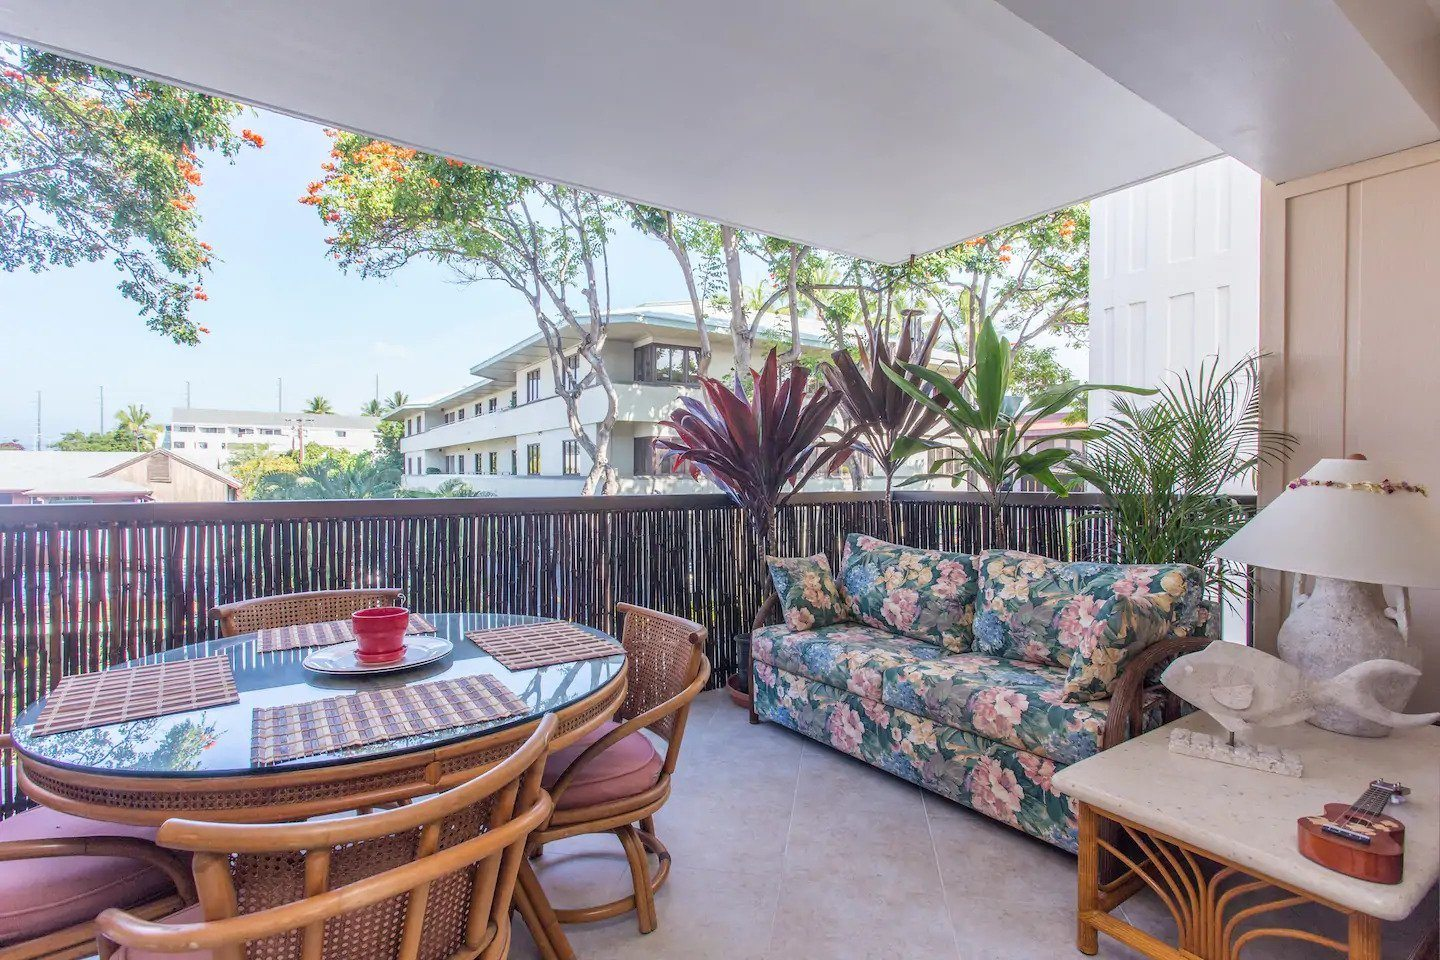 hawaii accommodation prices